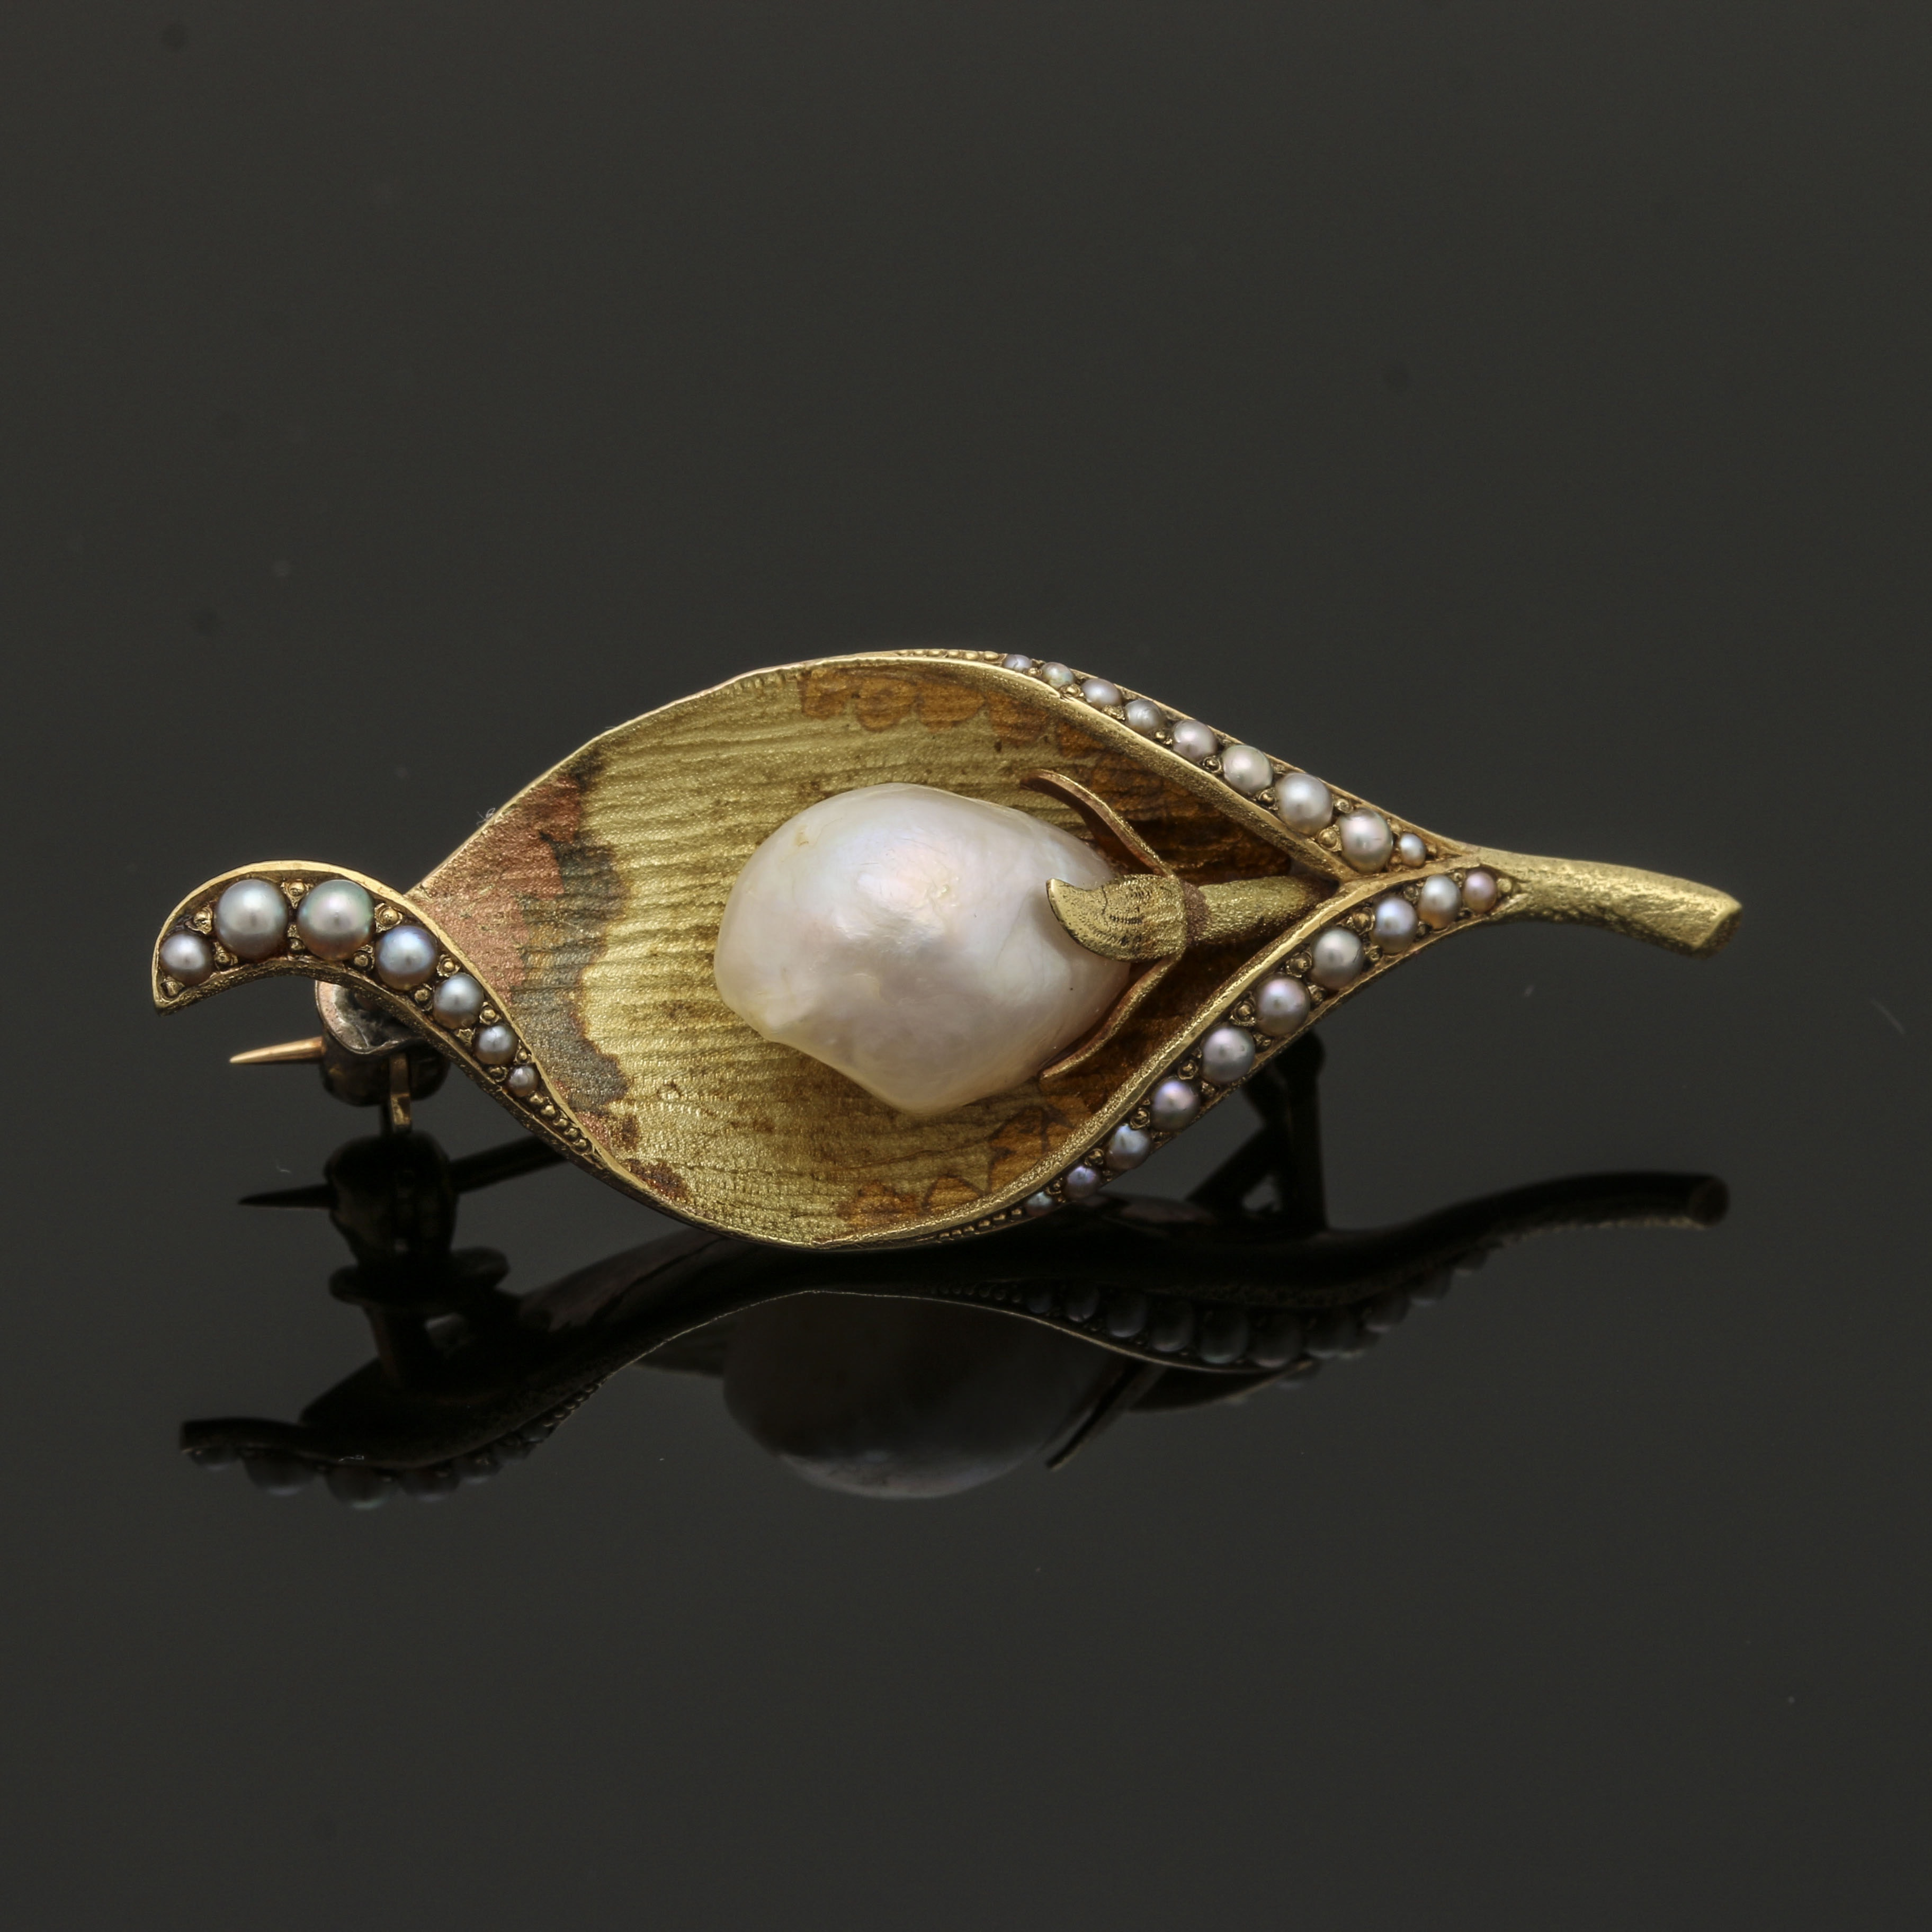 Vintage 14K Yellow Gold Cultured Pearl Floral Converter Brooch